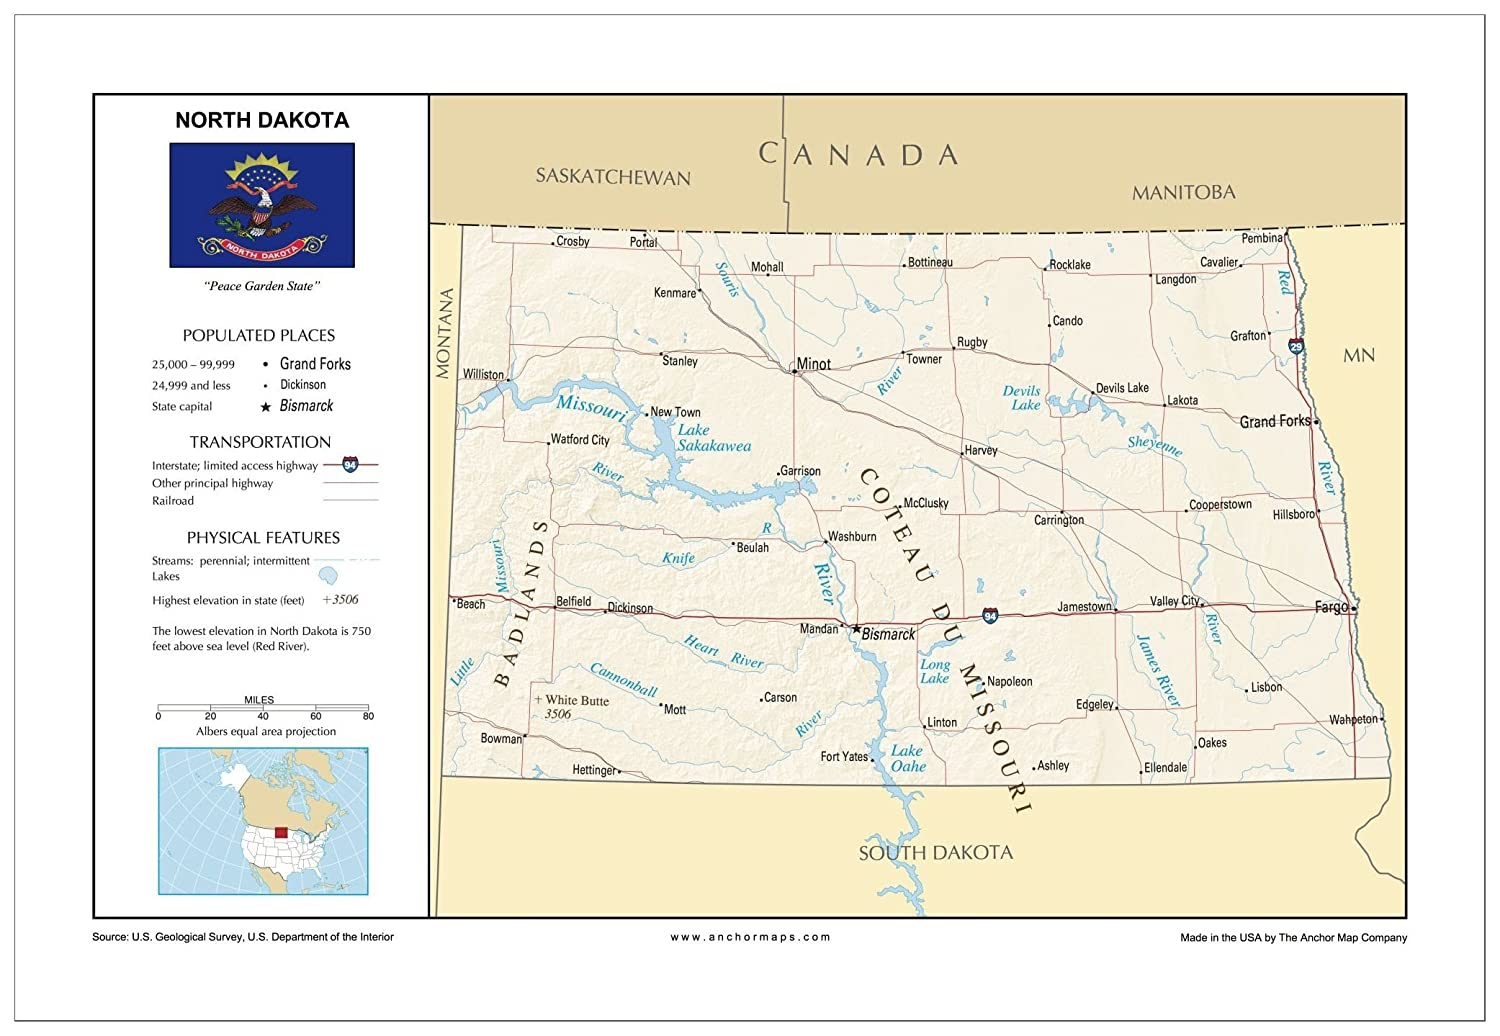 Amazon.com : 13x19 North Dakota General Reference Wall Map ...